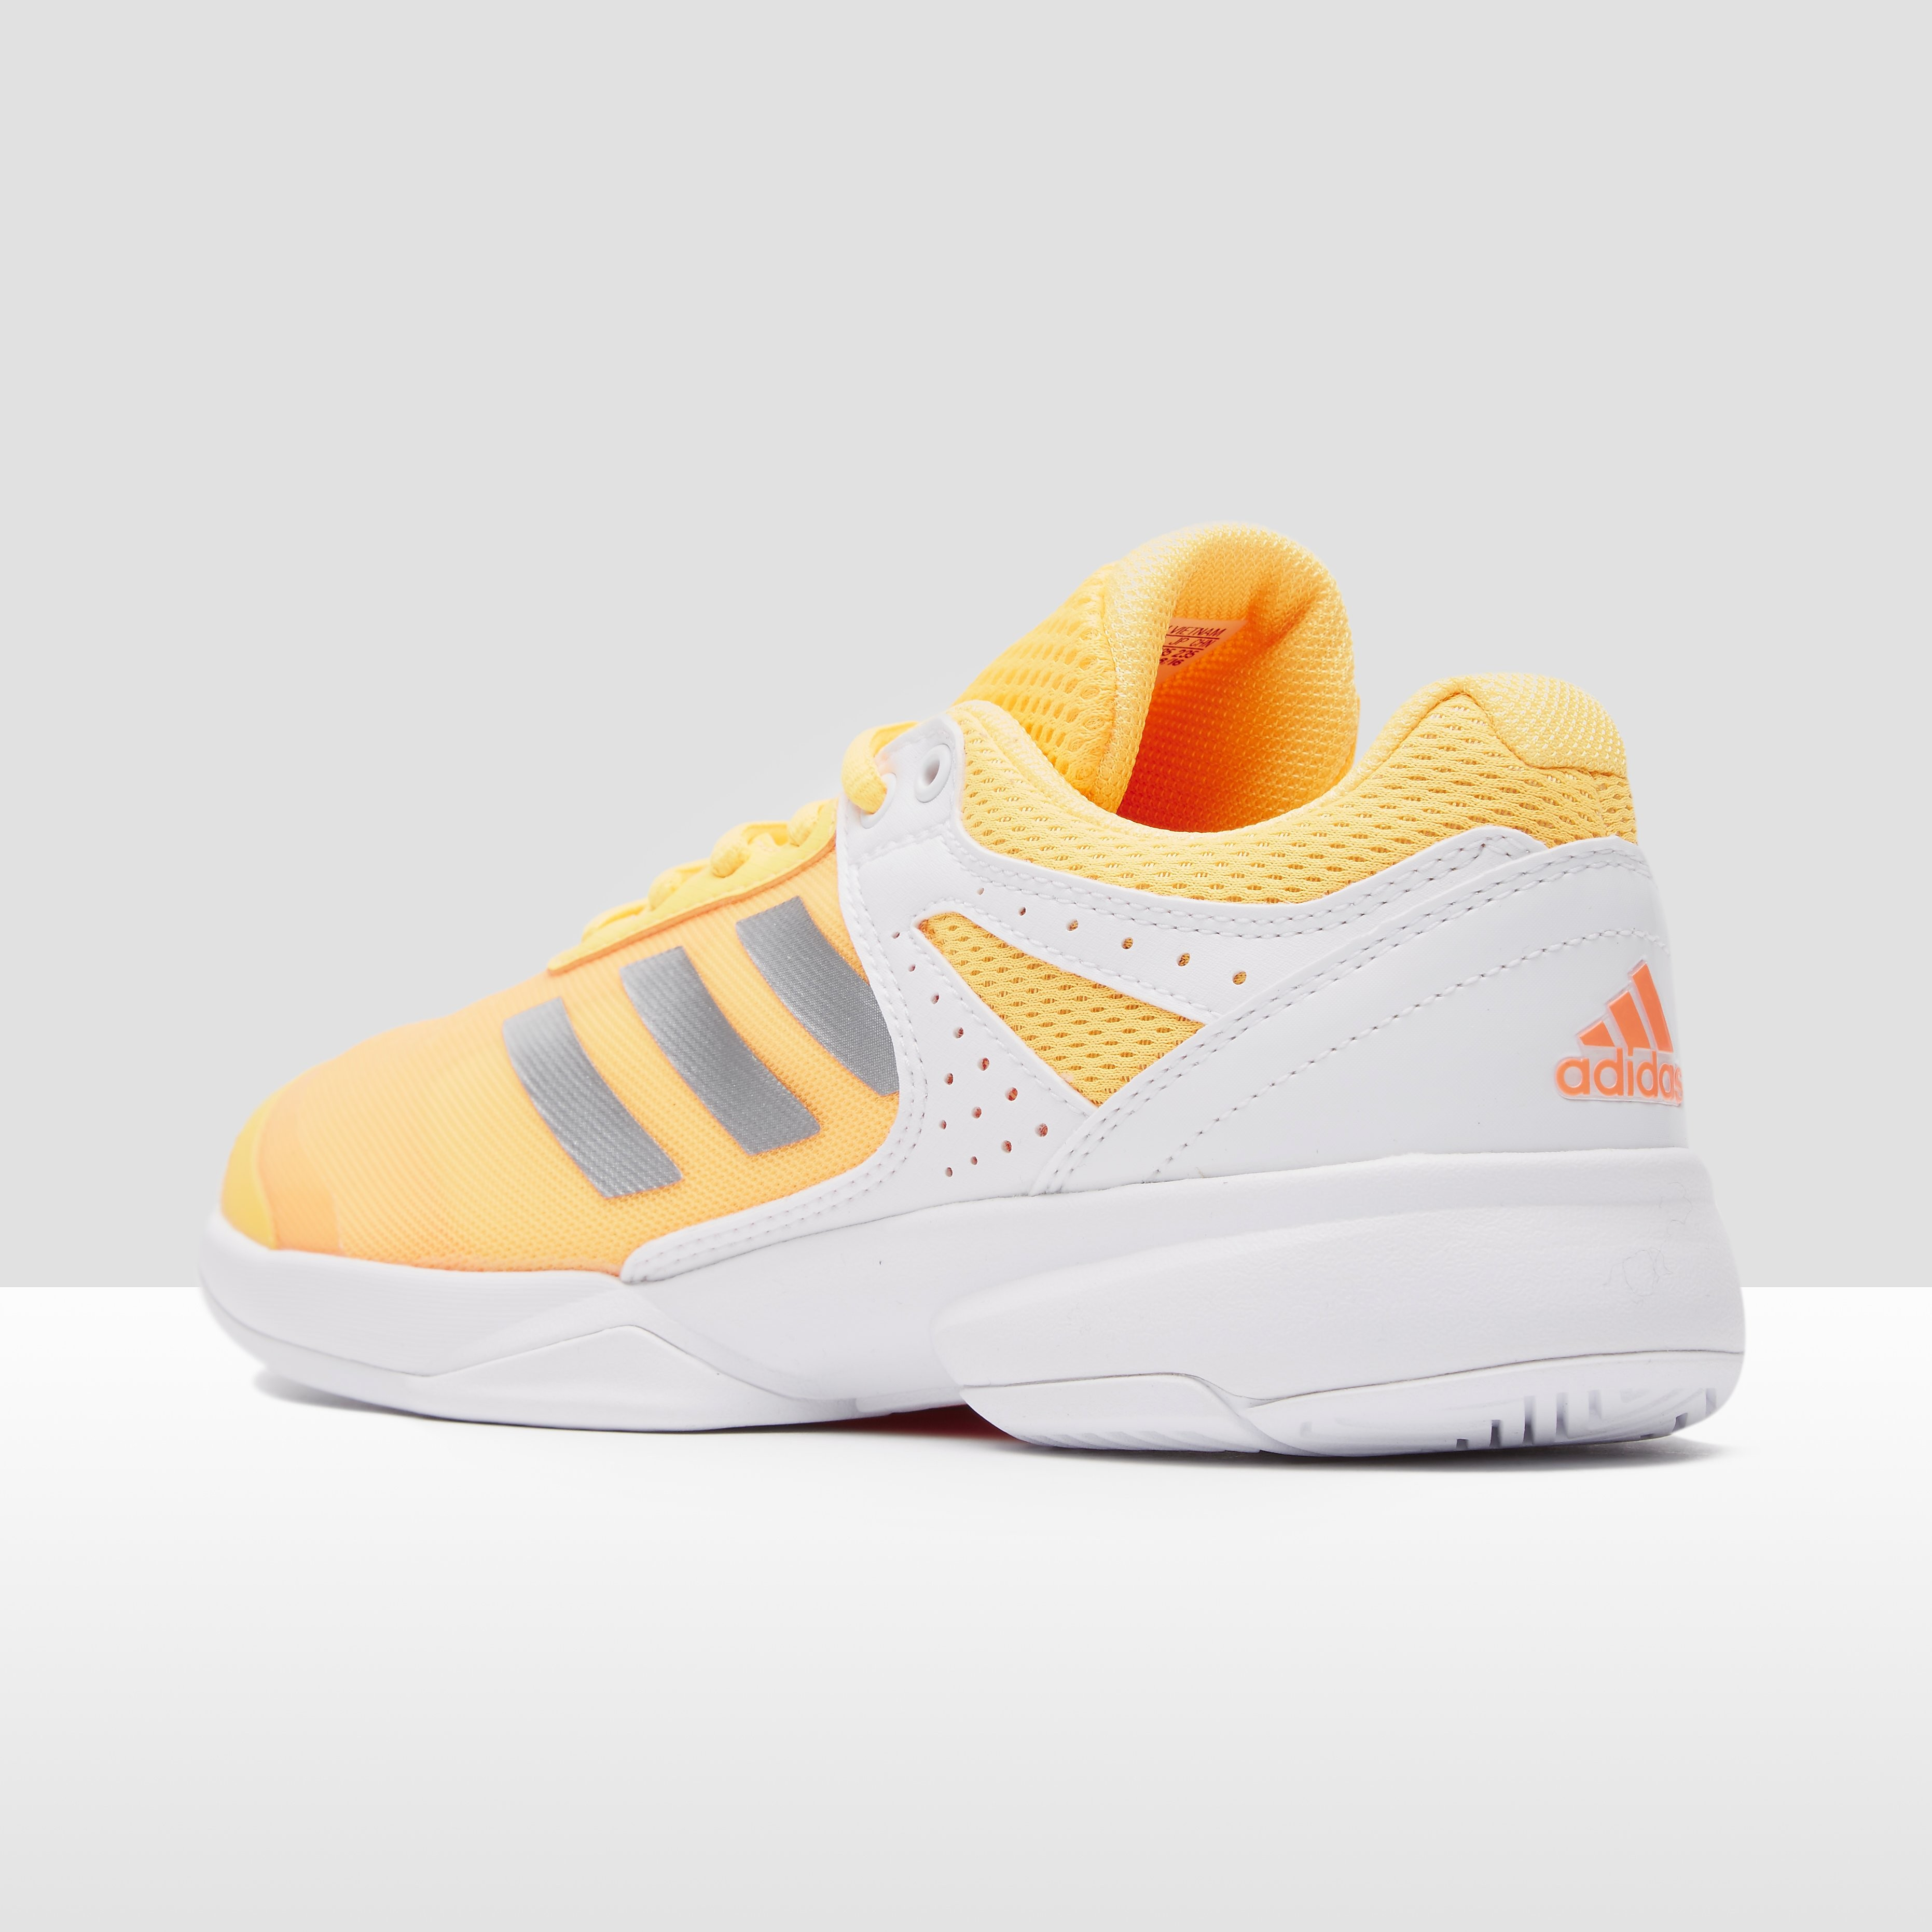 adidas Adizero Court Women's Tennis Shoes